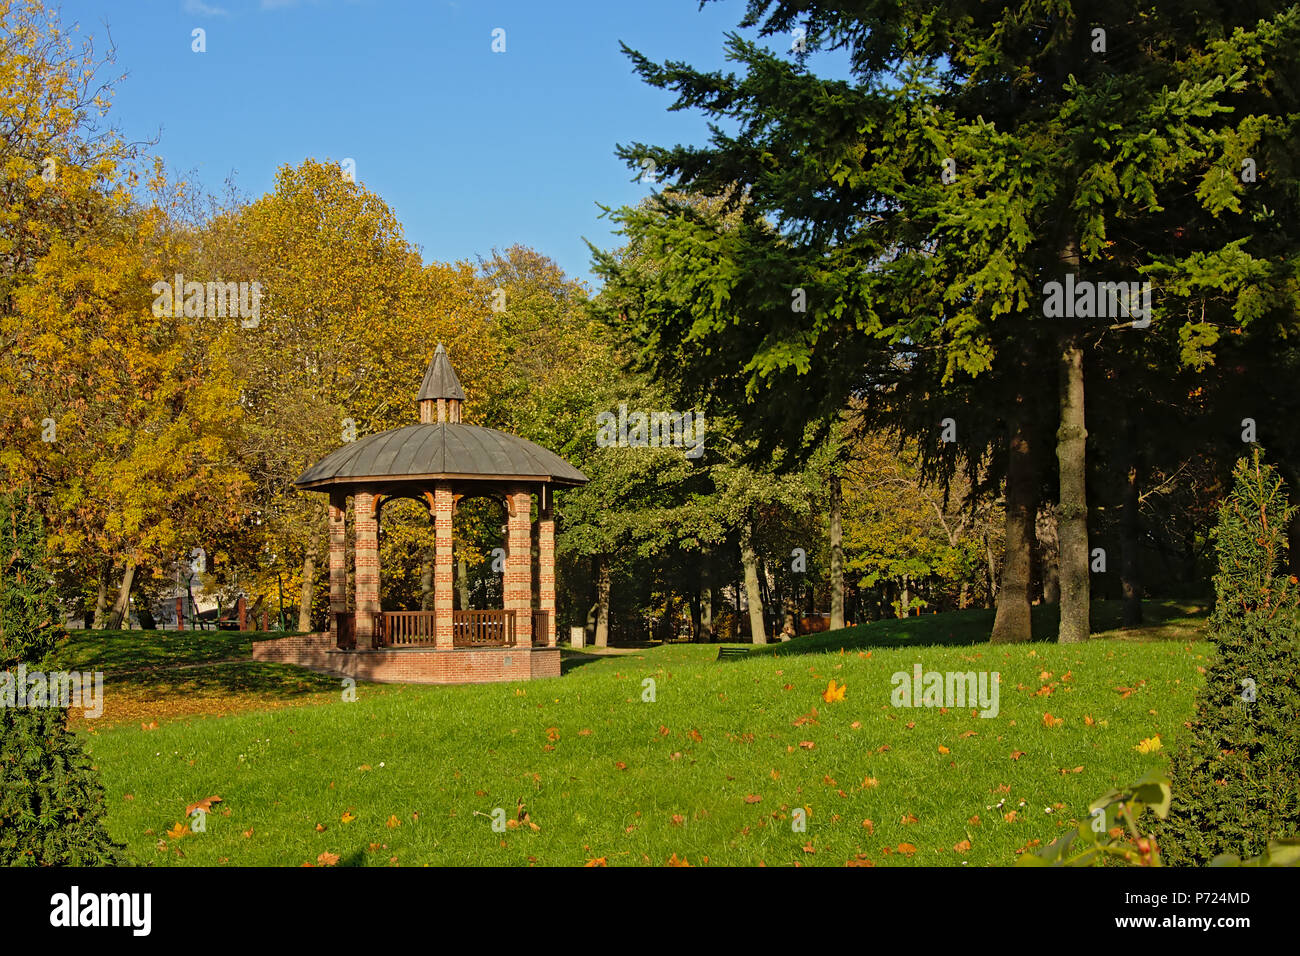 Gazebo in between autumn trees in `Bois de Boulogne` city park on a sunny day with blue sky in Paris, France - Stock Image